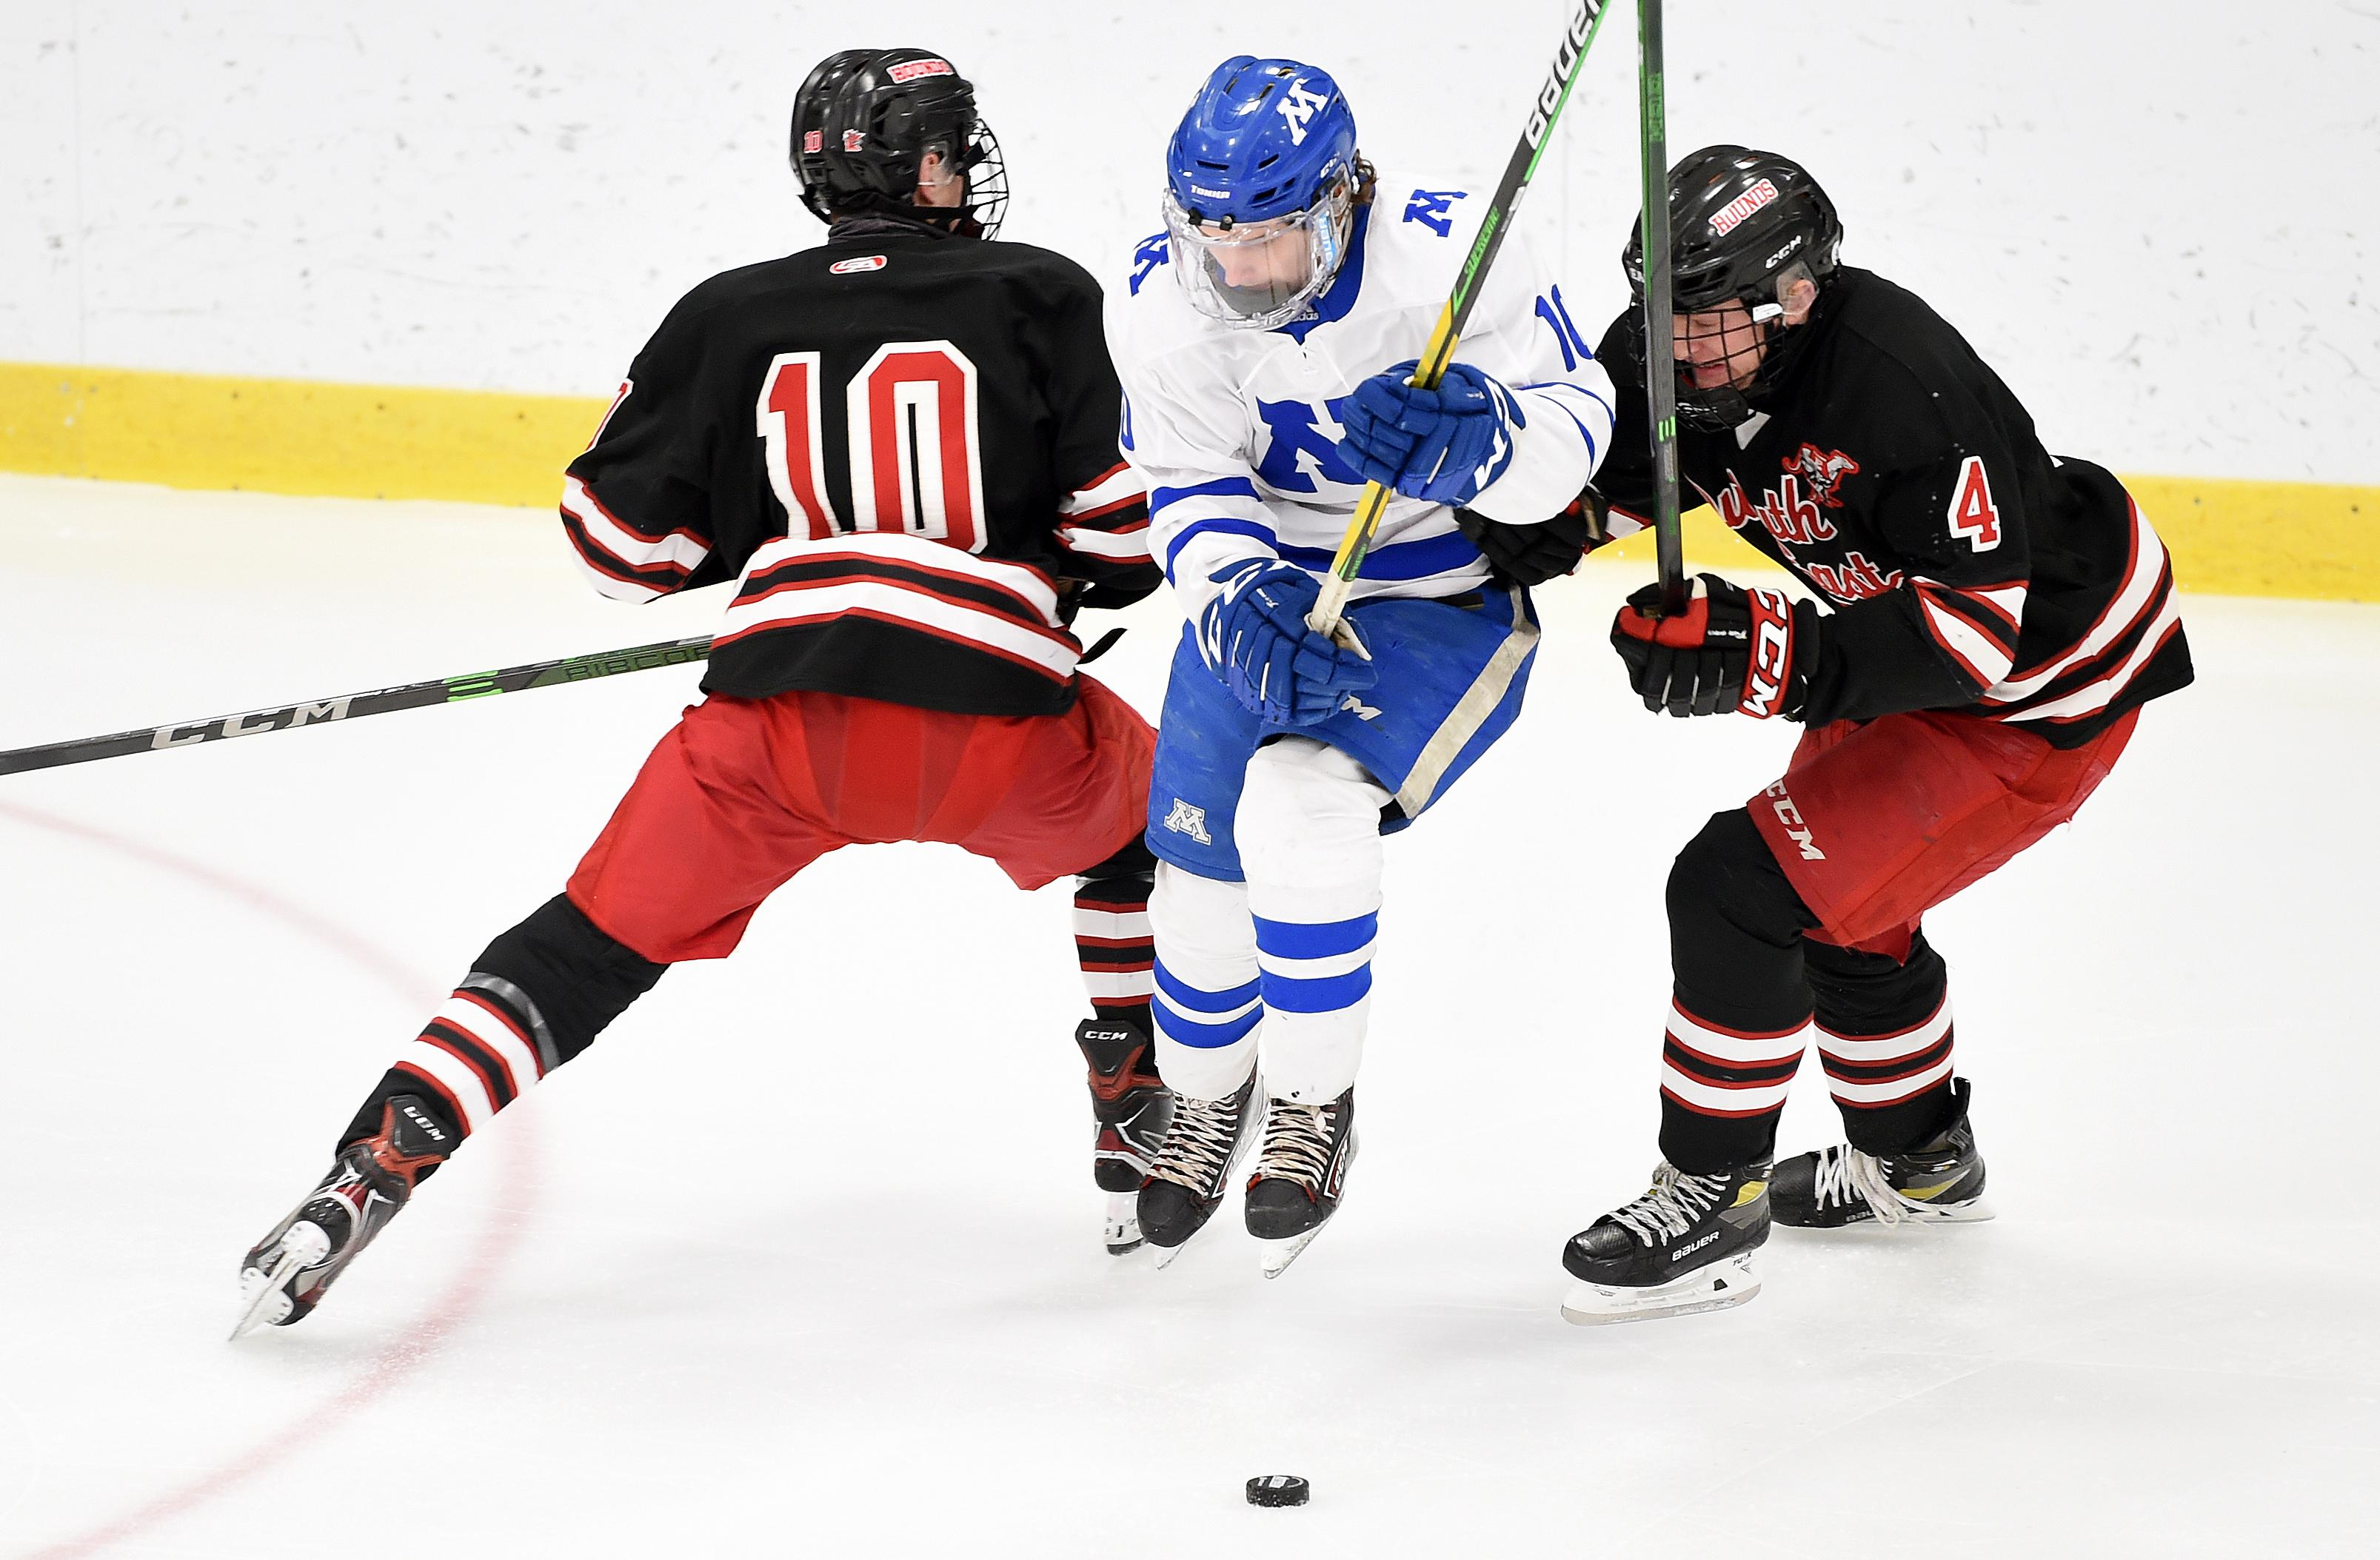 Minnetonka's Hunter Newhouse splits the Duluth East defense during Thursday night's game at the Pagel Activity Center. Newhouse had two first-period goals. Photo by Loren Nelson, SportsEngine